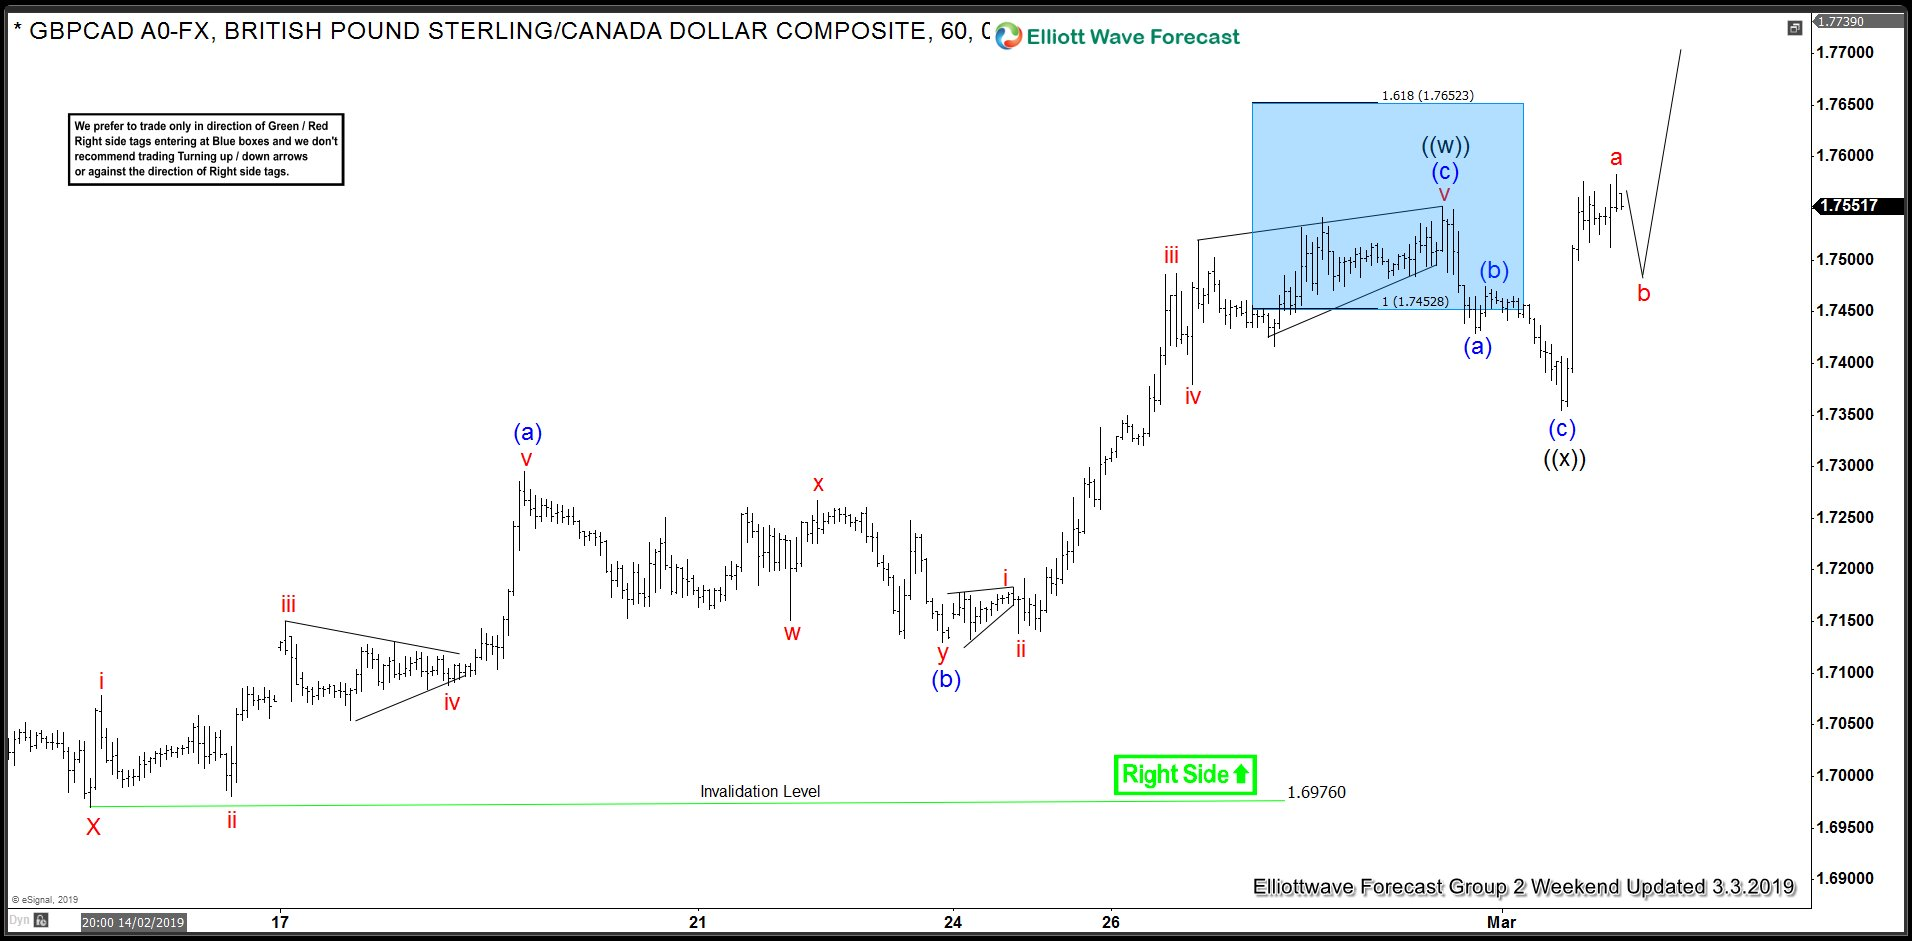 Elliott Wave structure for GBPCAD favors more upside